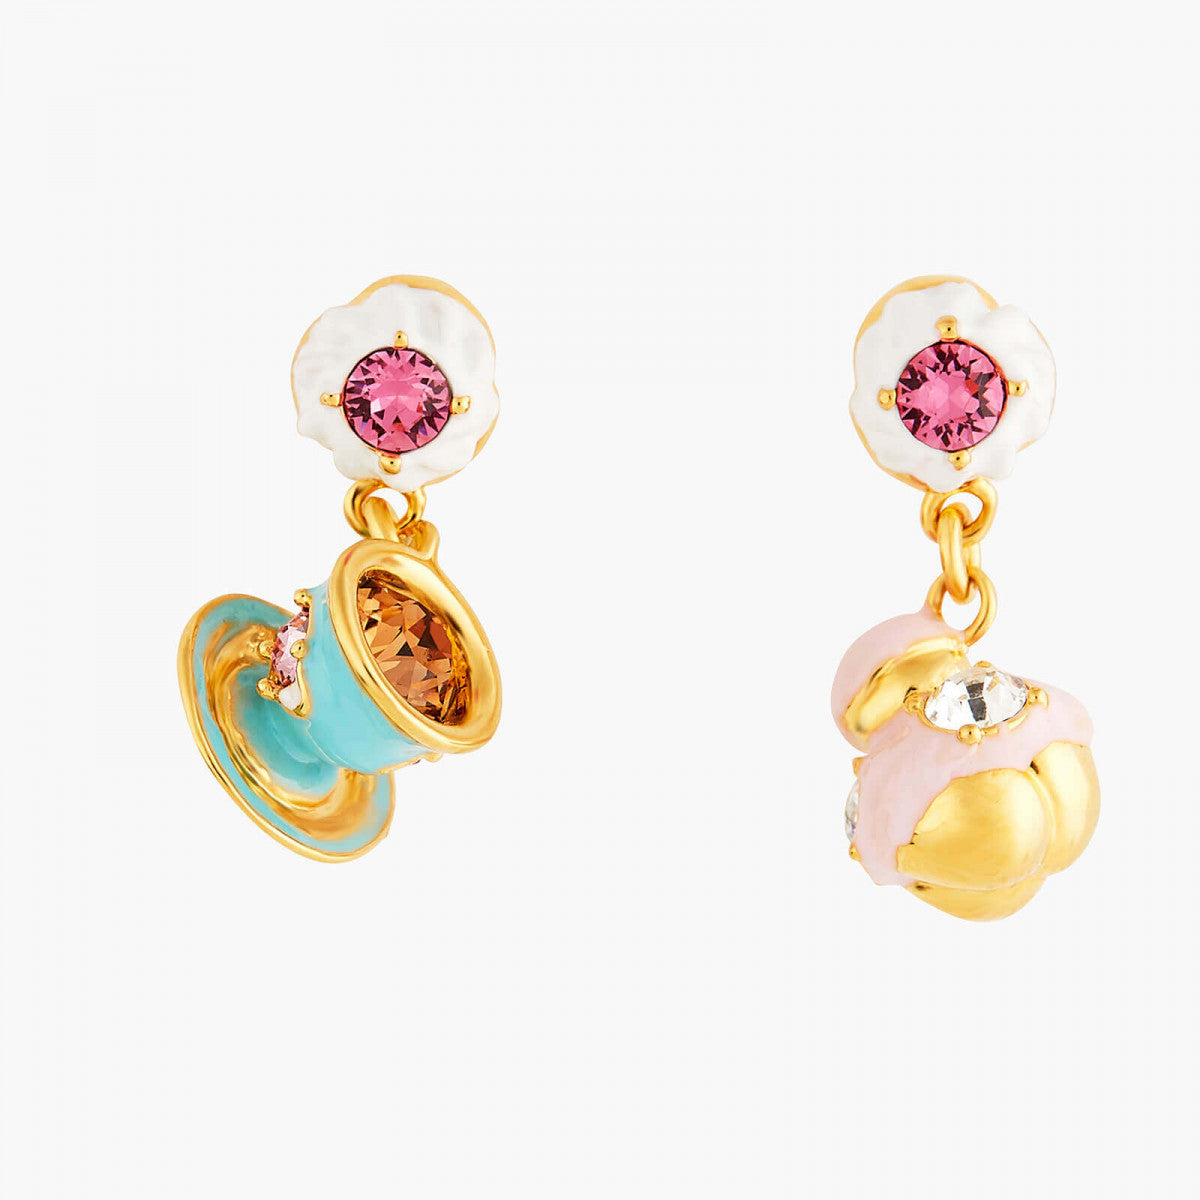 Religieuse and Teacup post earrings